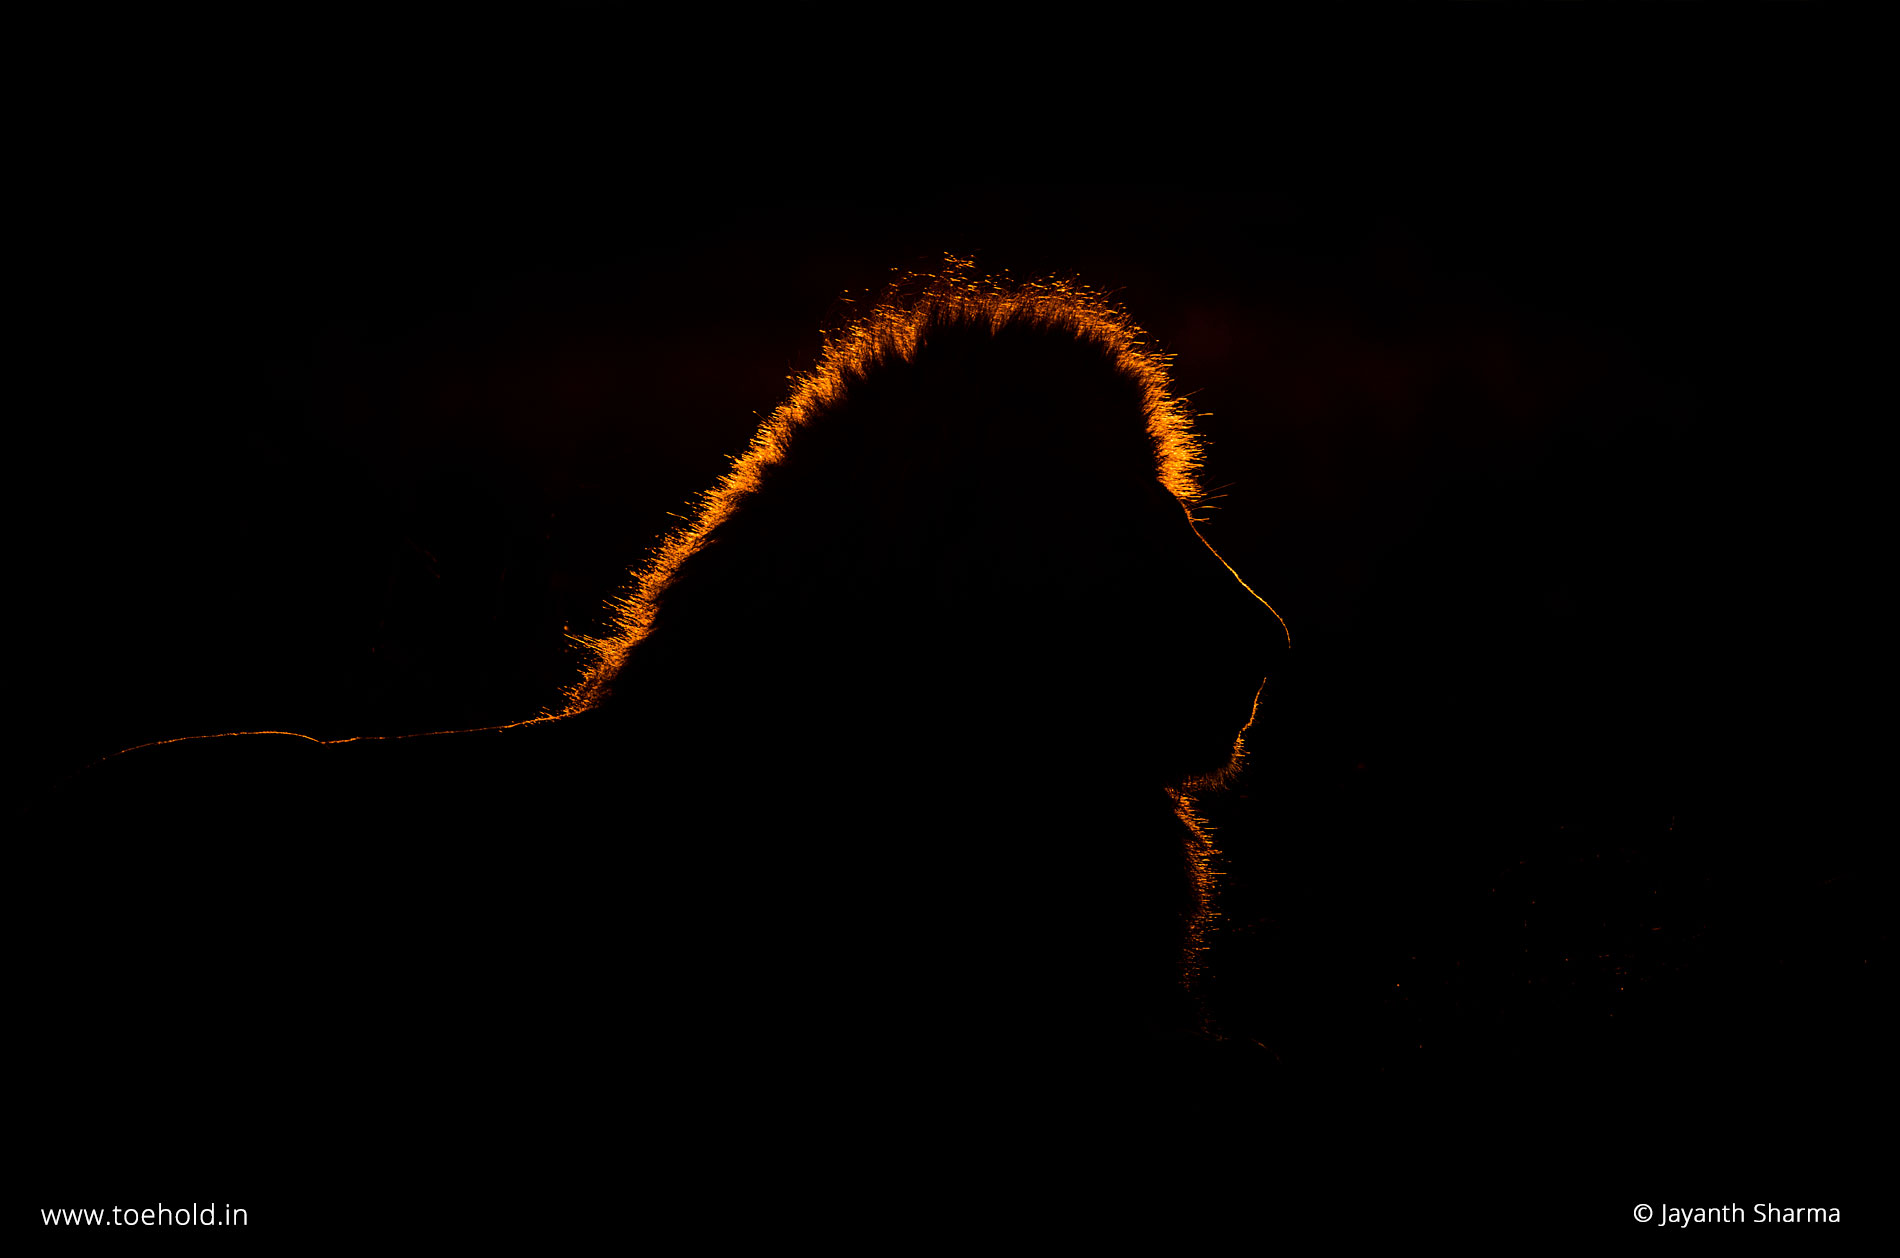 Rim-lit lion, Masai Mara, Kenya, by Jayanth Sharma